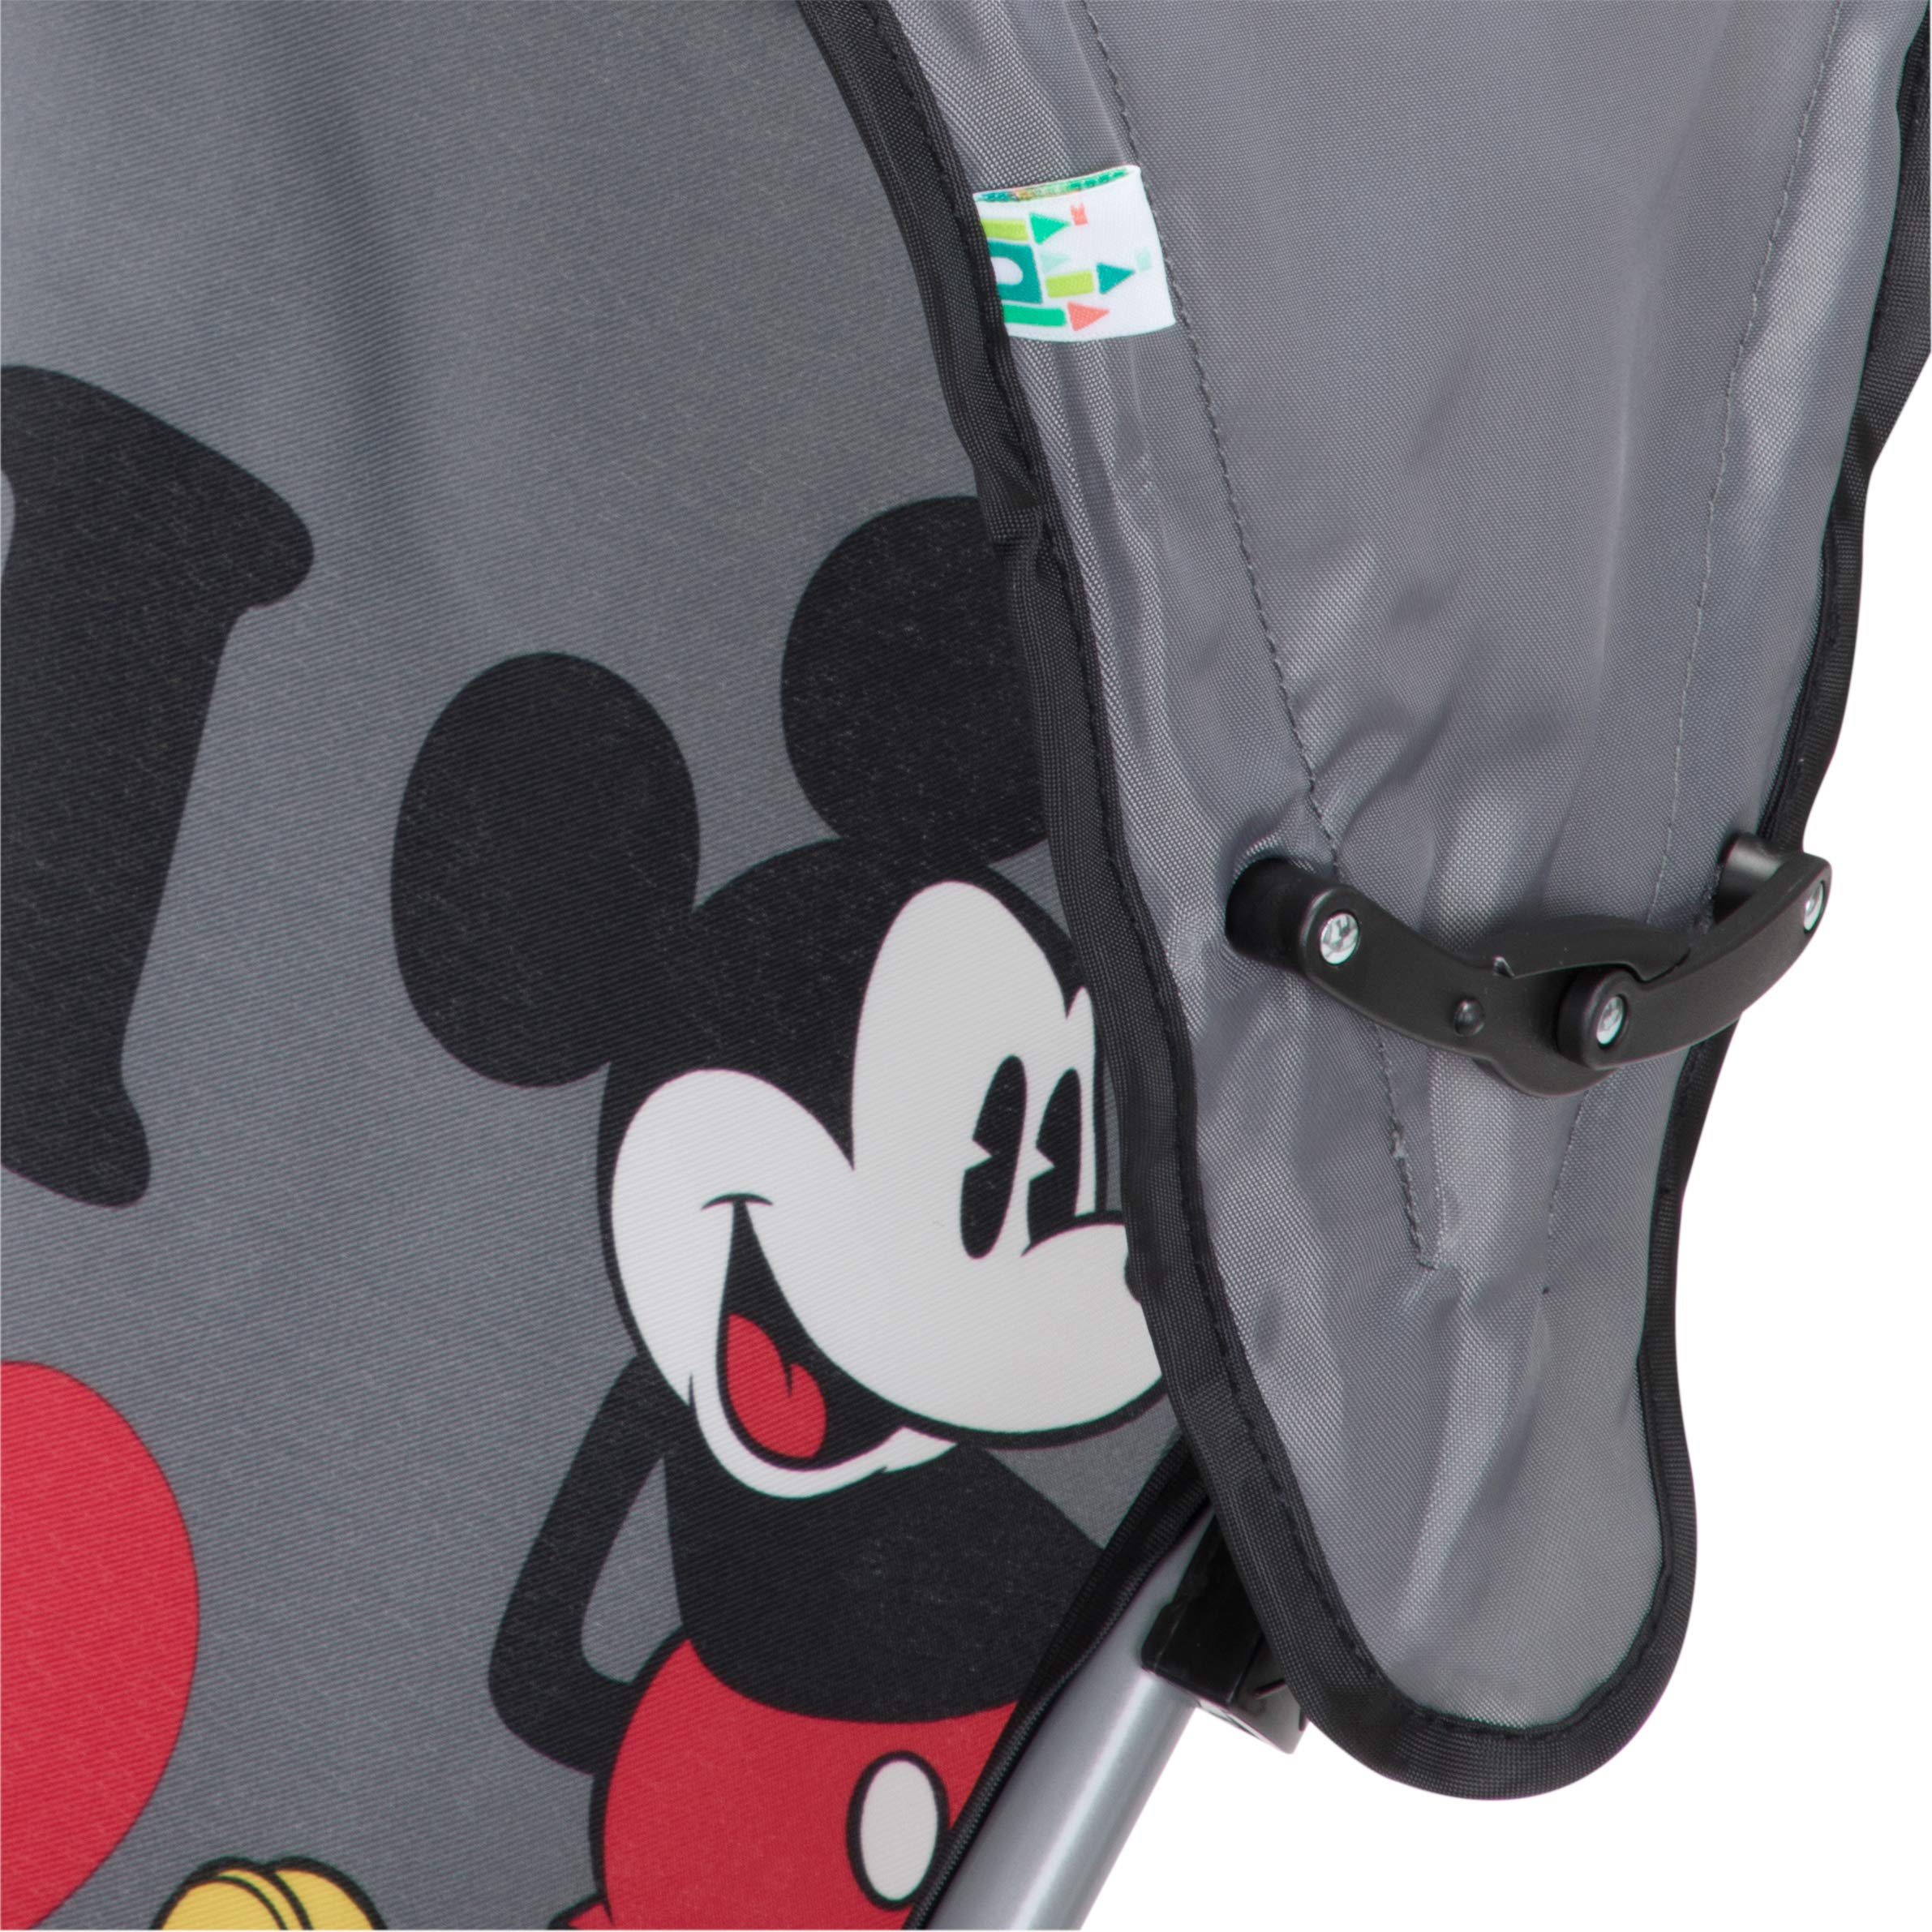 Disney Umbrella Stroller with Canopy, I Heart Mickey by Disney (Image #5)